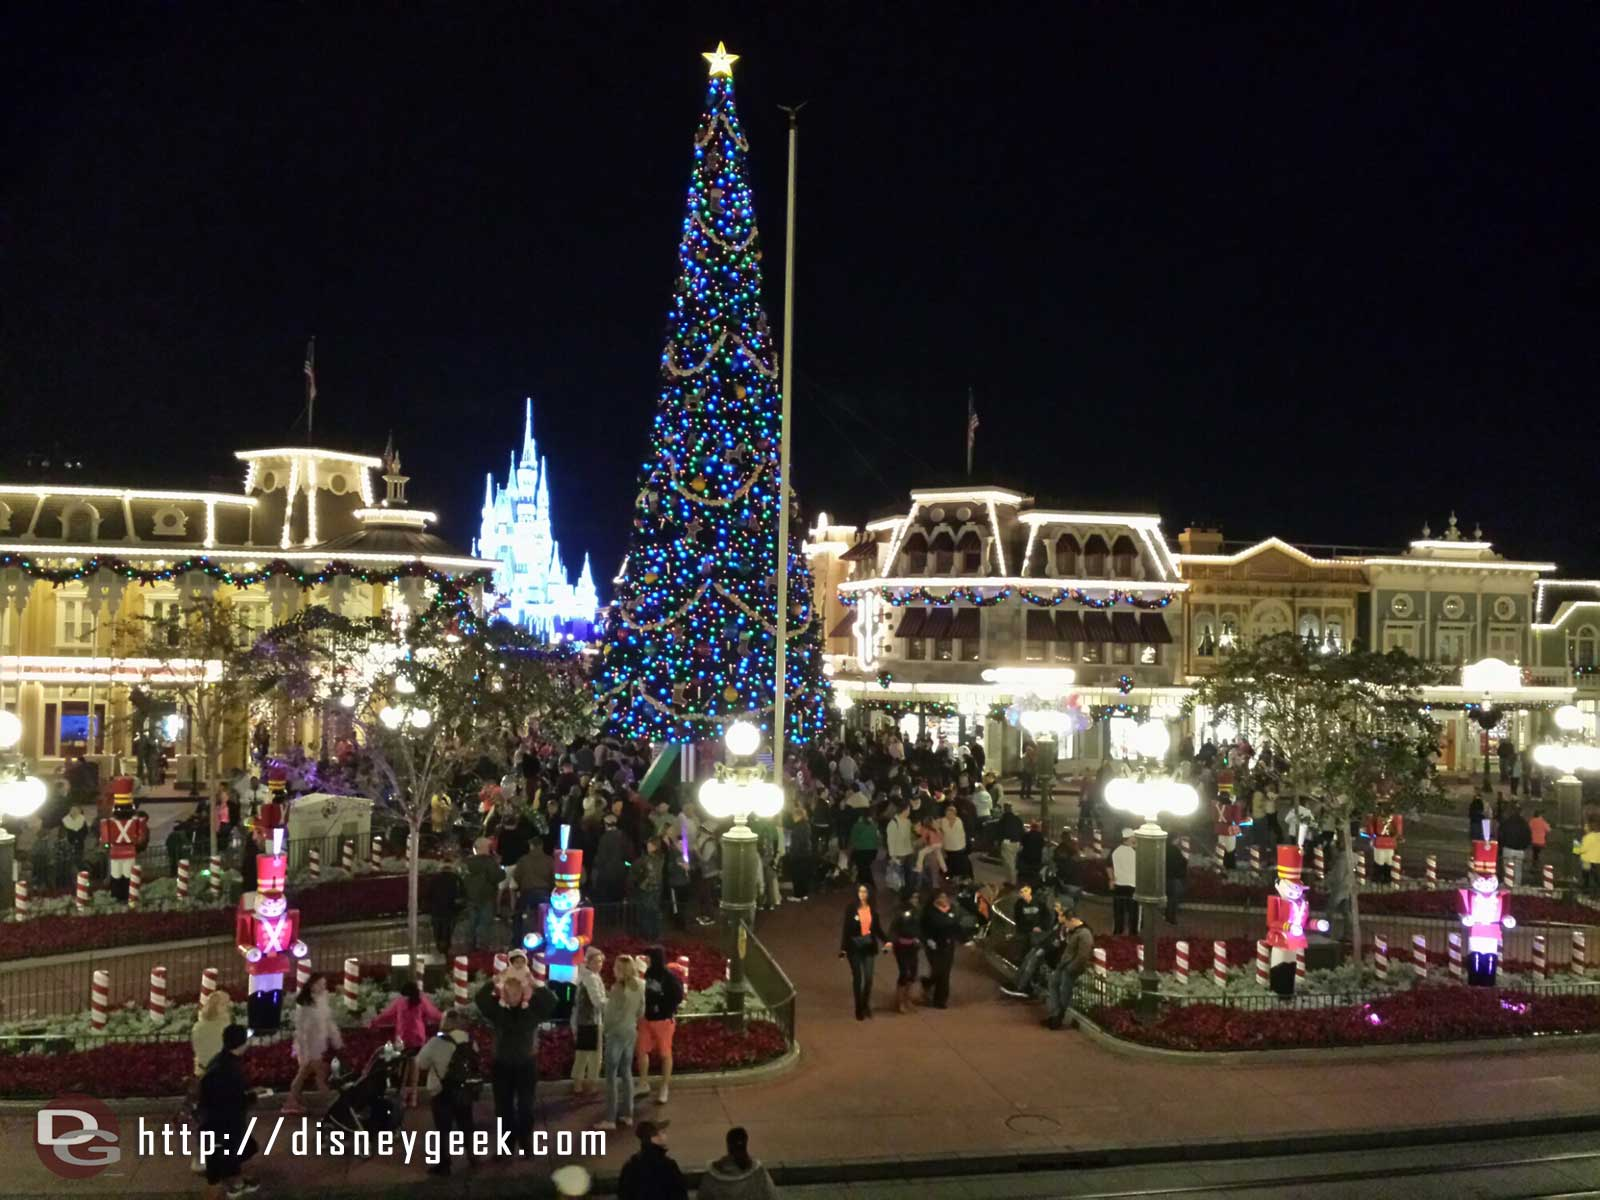 Town Square with the Christmas tree lit up, #WDW Magic Kingdom